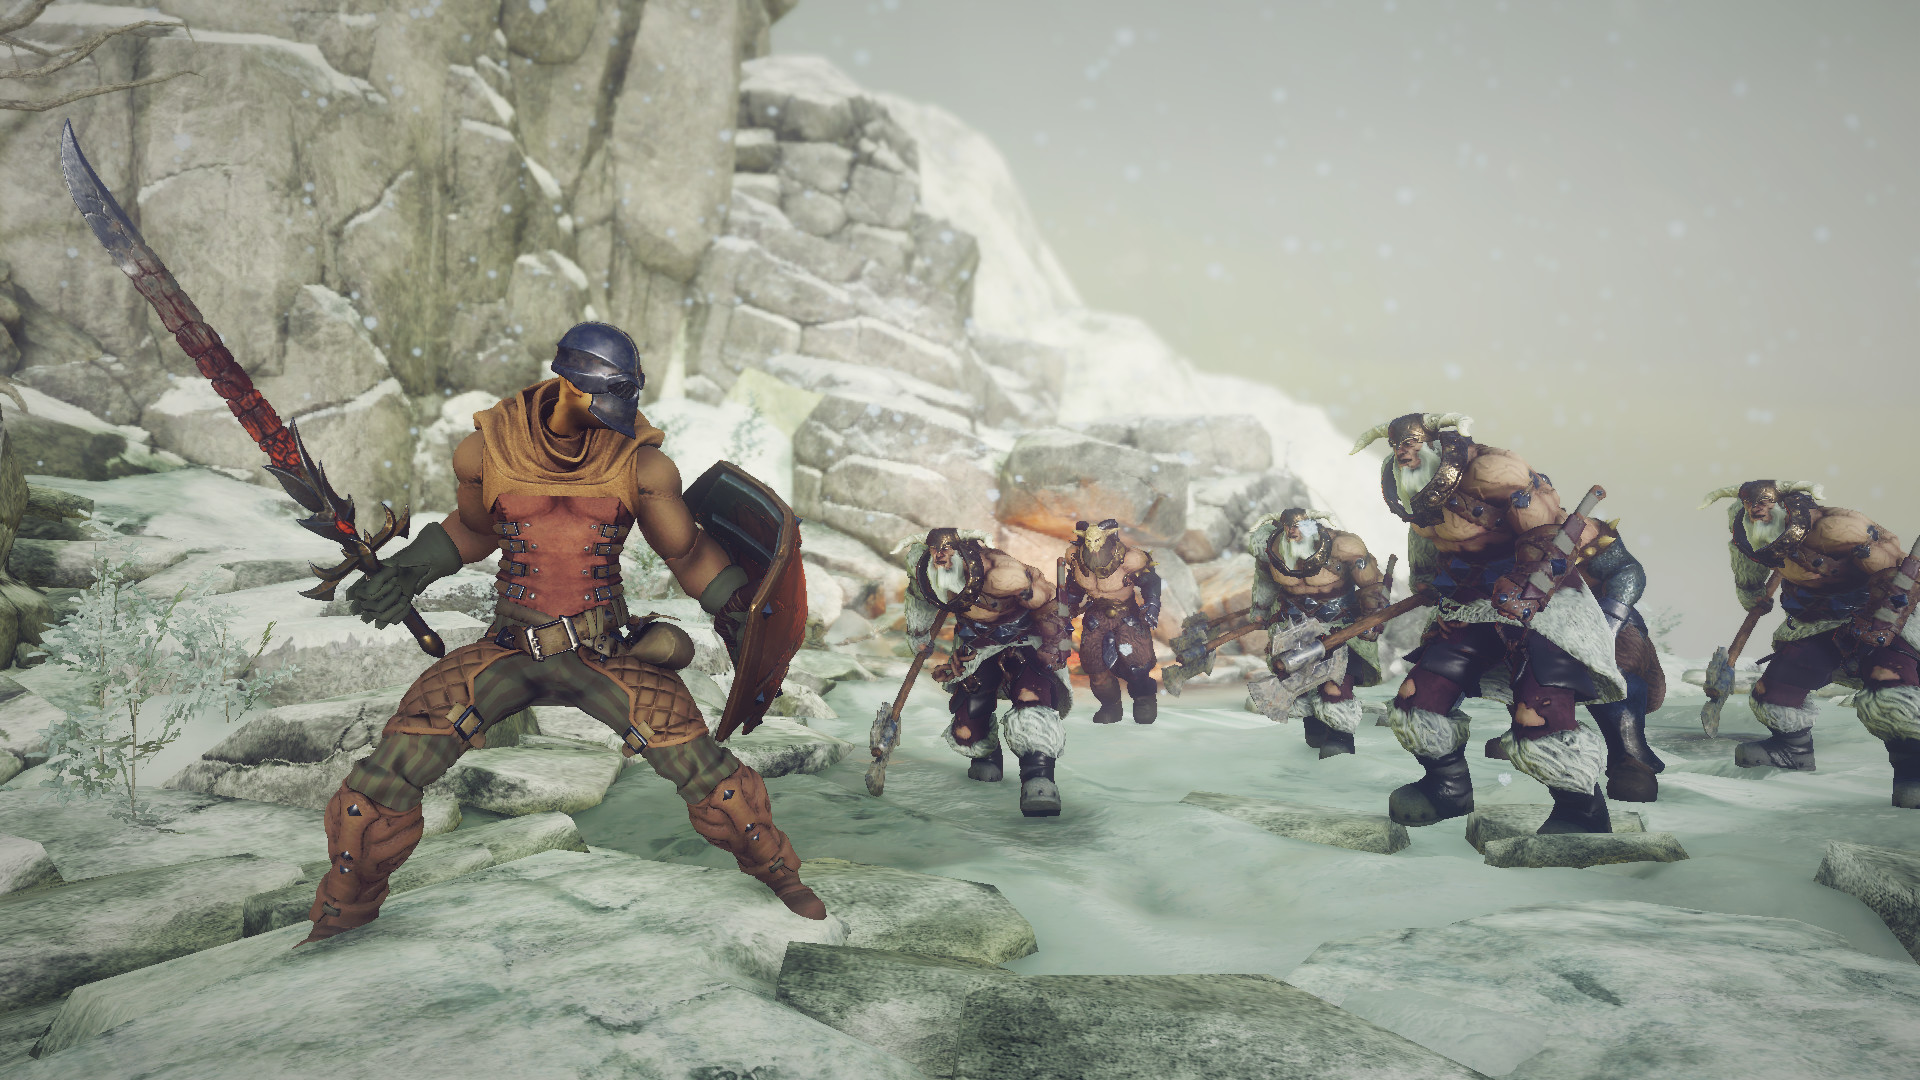 Hand of Fate 2 shuffles in Endless Mode